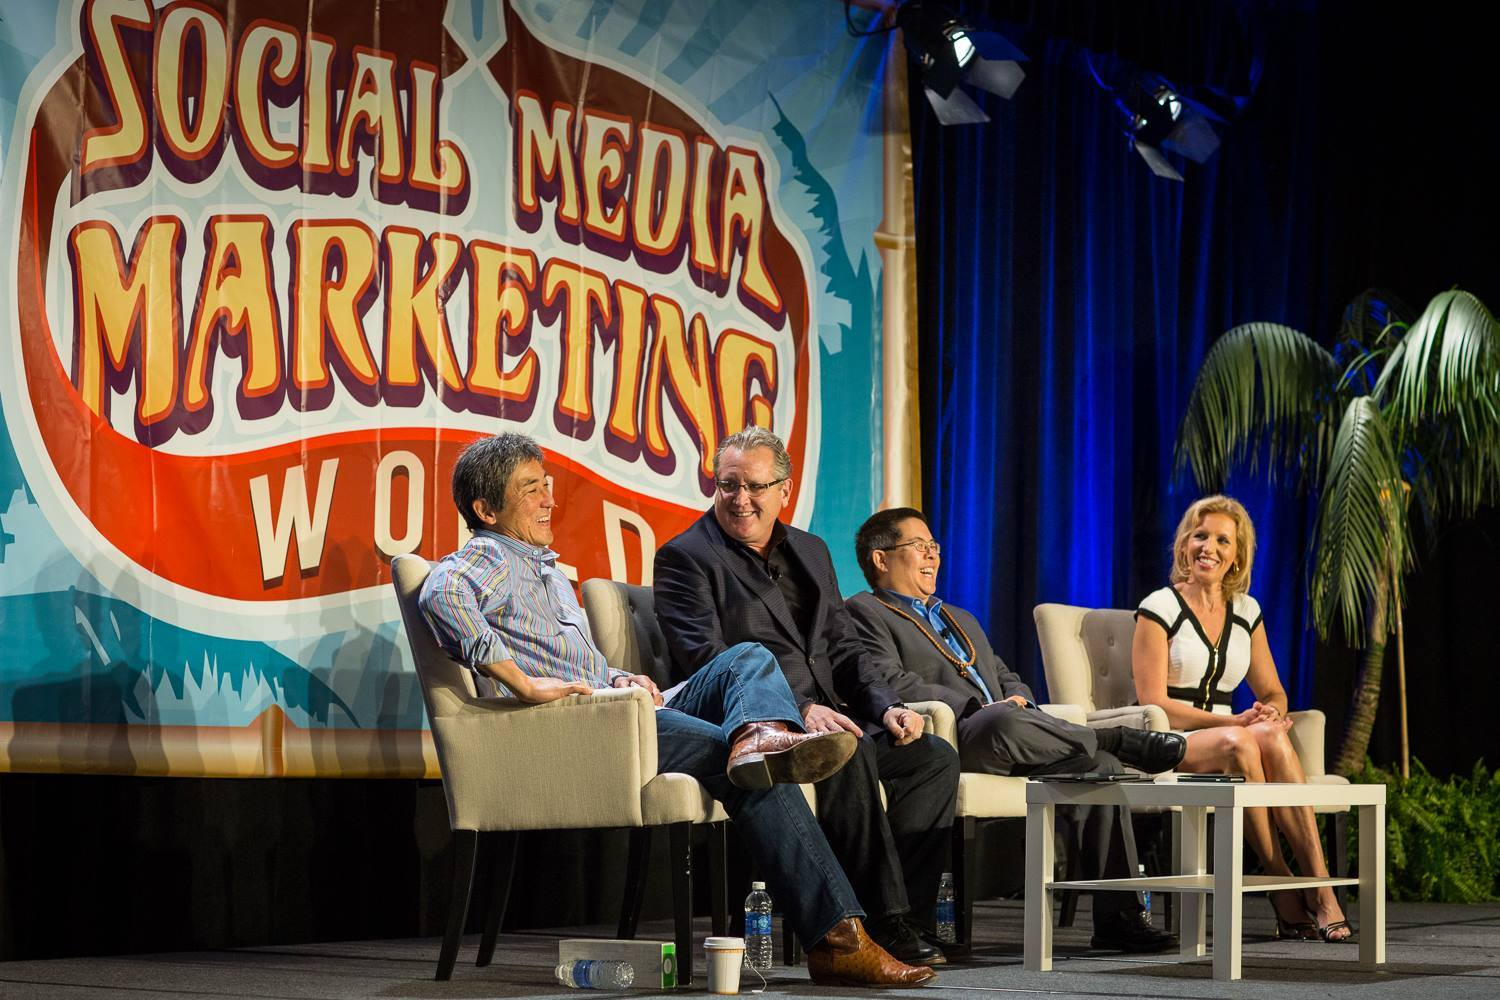 Hilarious Insights from Social Media Marketing World 2015